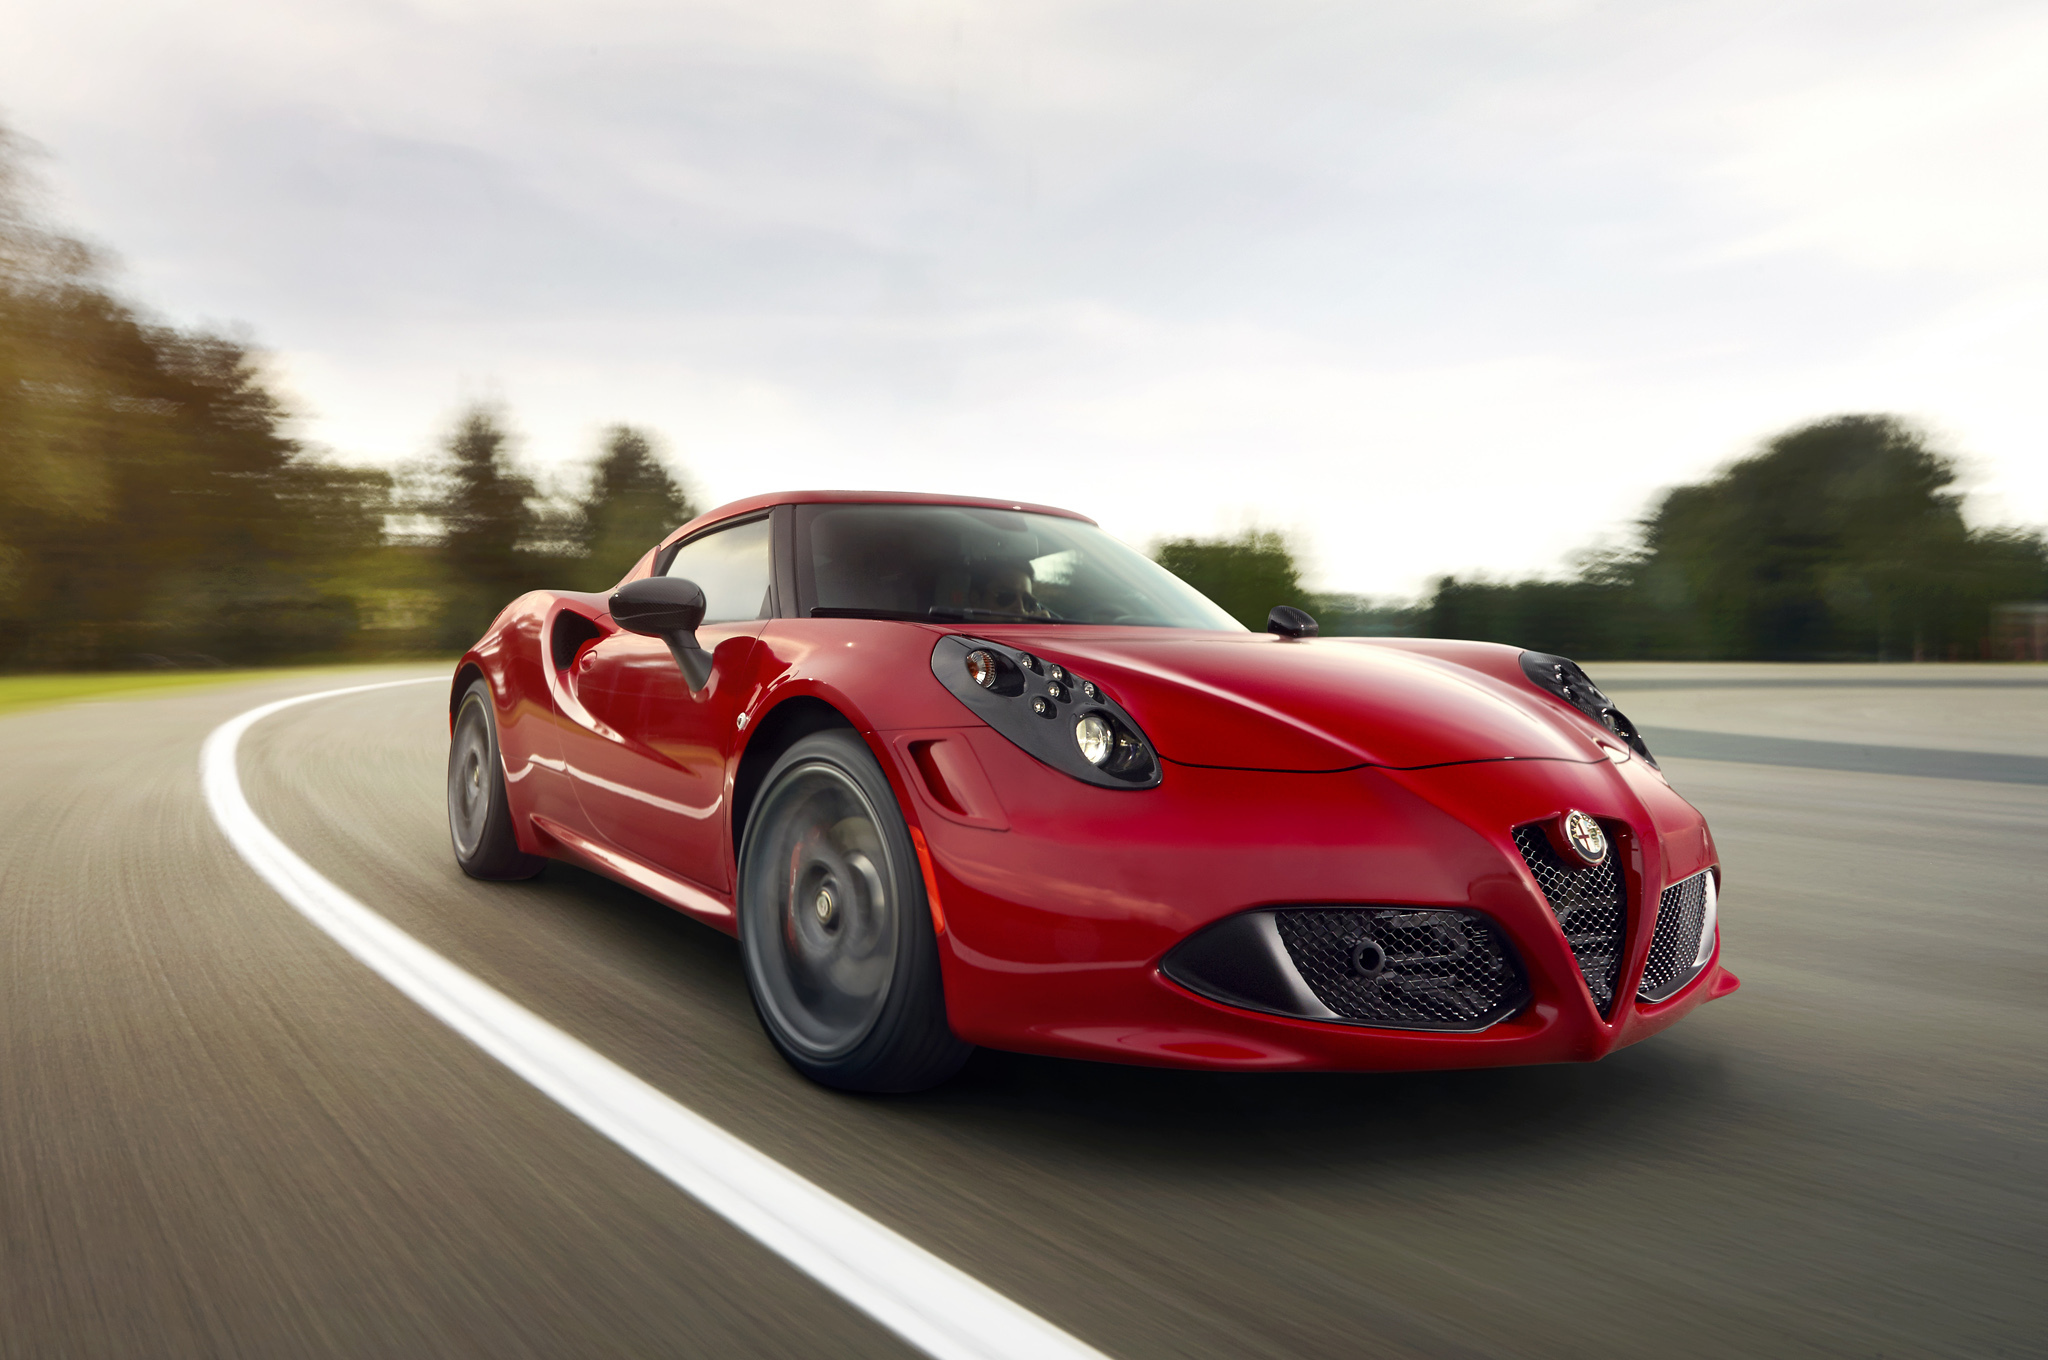 2014 Alfa Romeo 4c Front Exterior View (Photo 2 of 25)